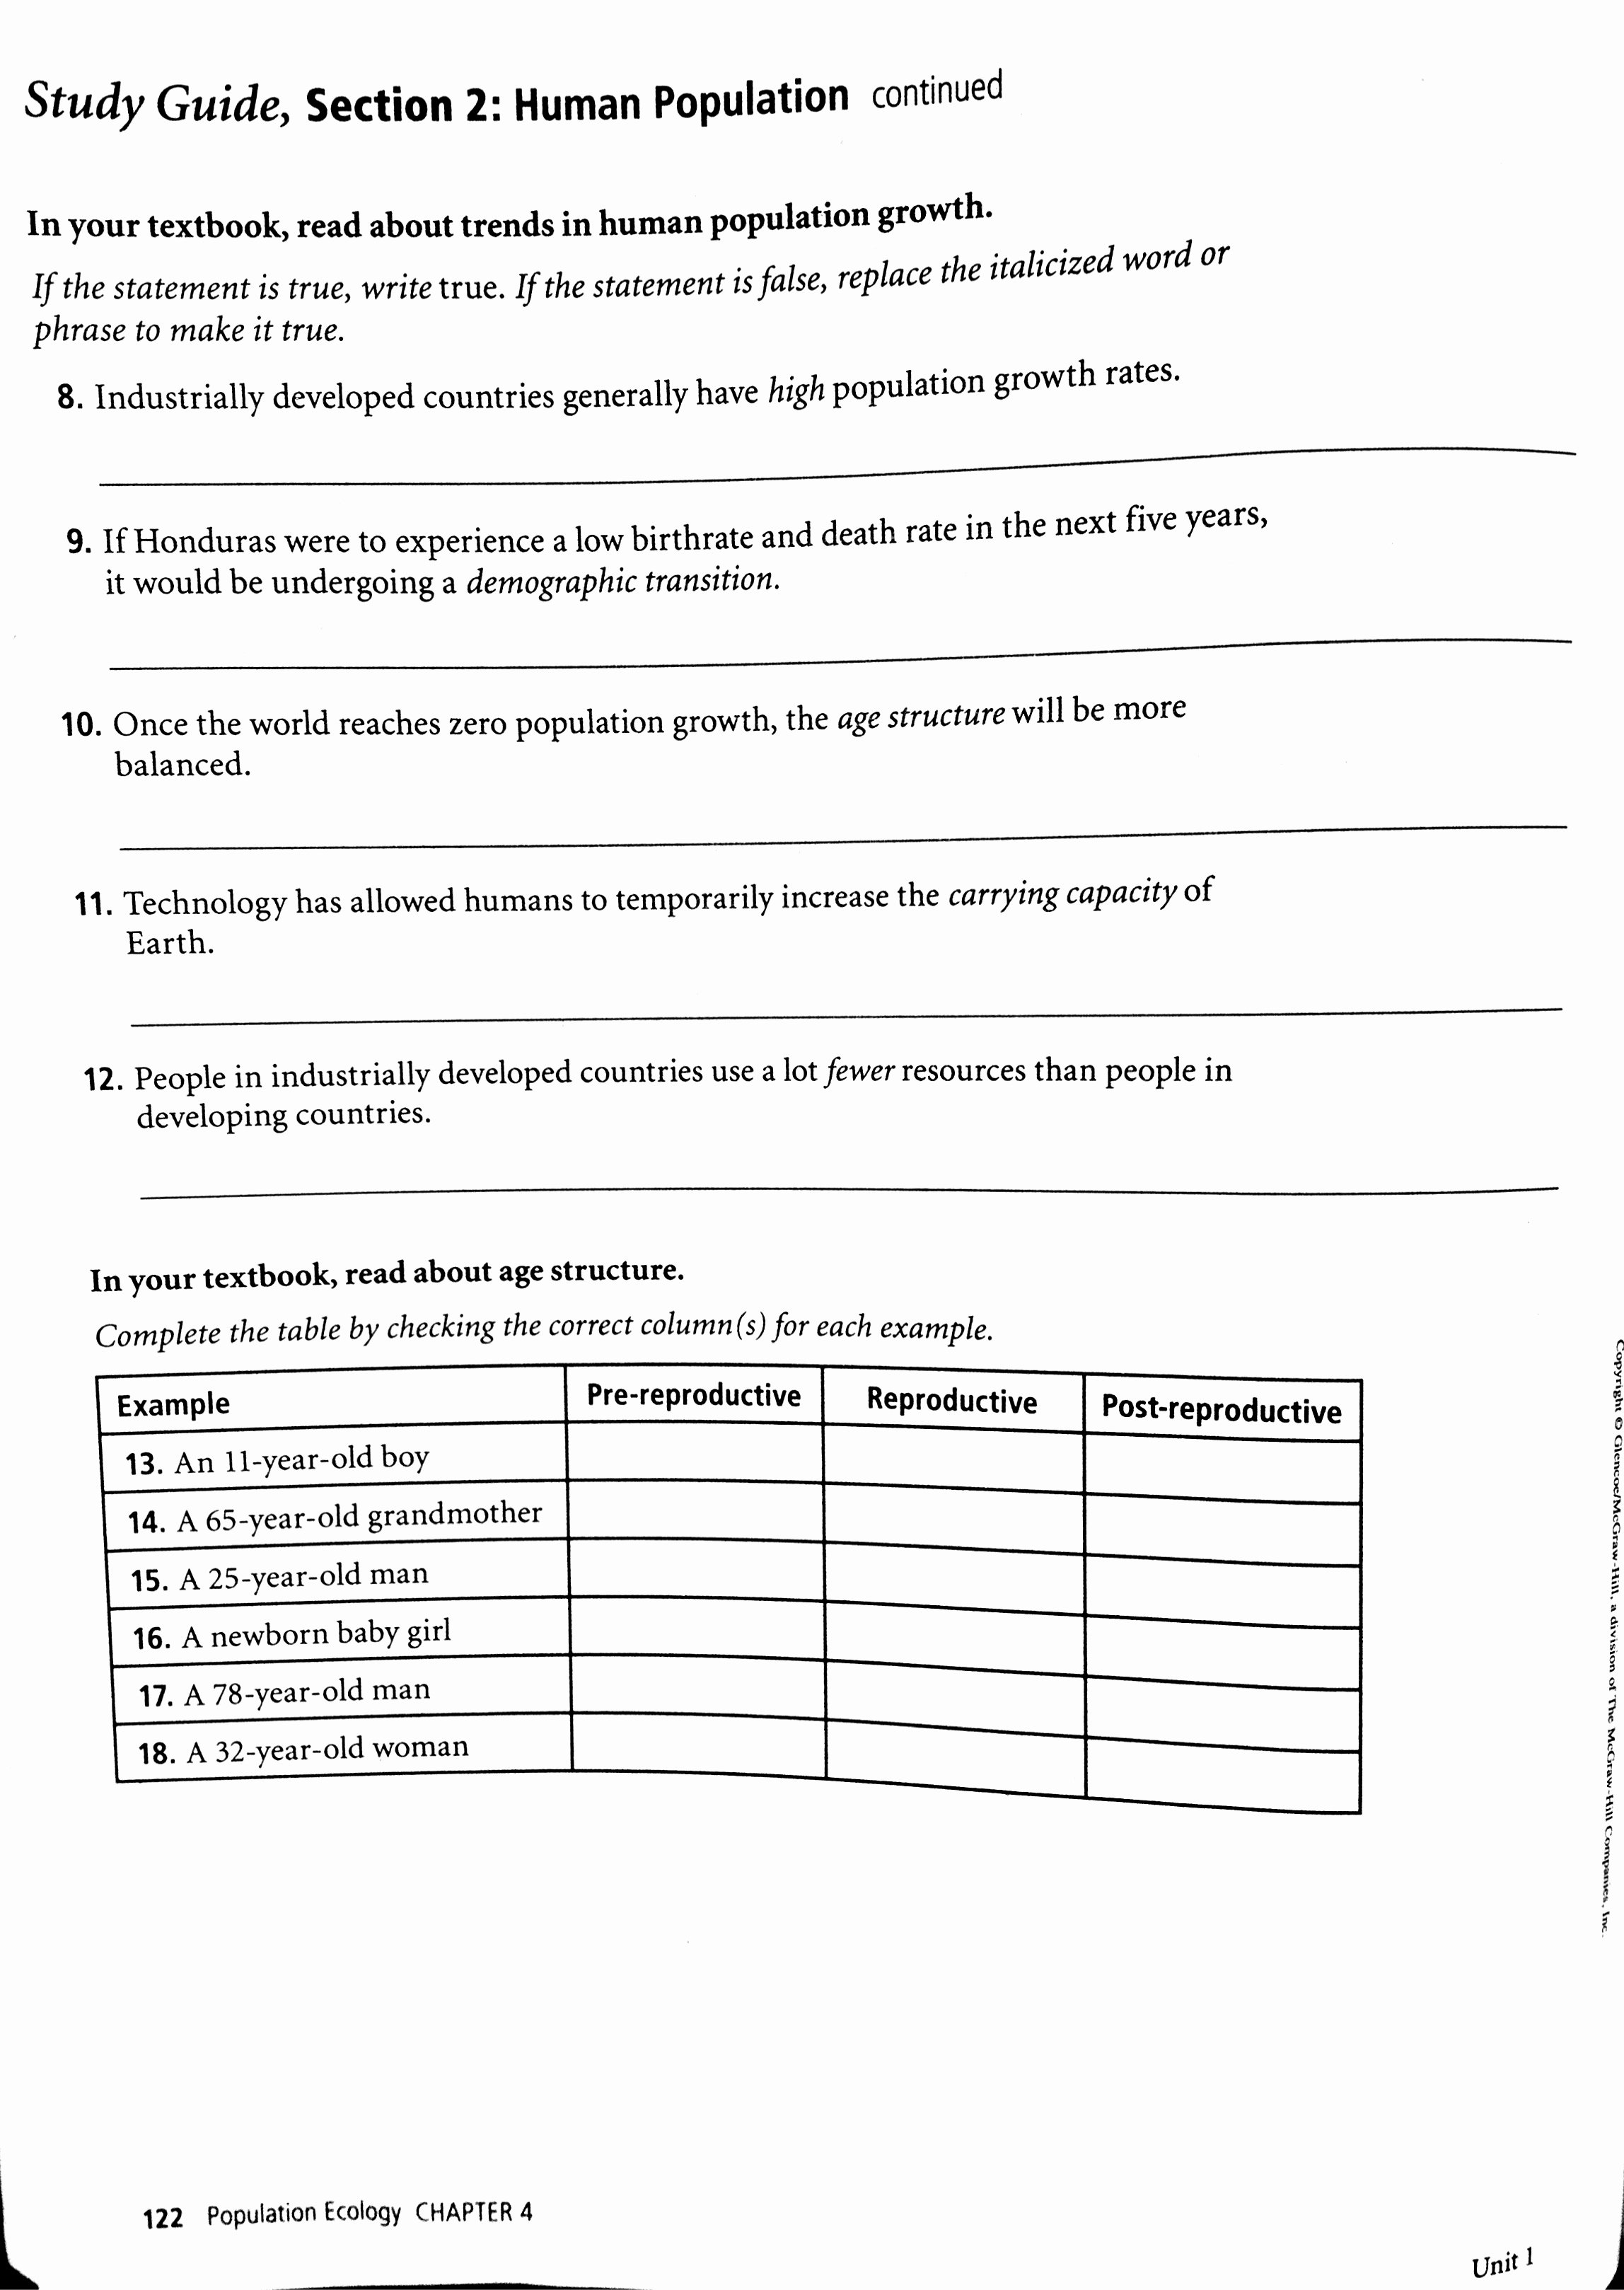 Human Population Growth Worksheet Answer New Worksheet Human Population Growth Worksheet Grass Fedjp